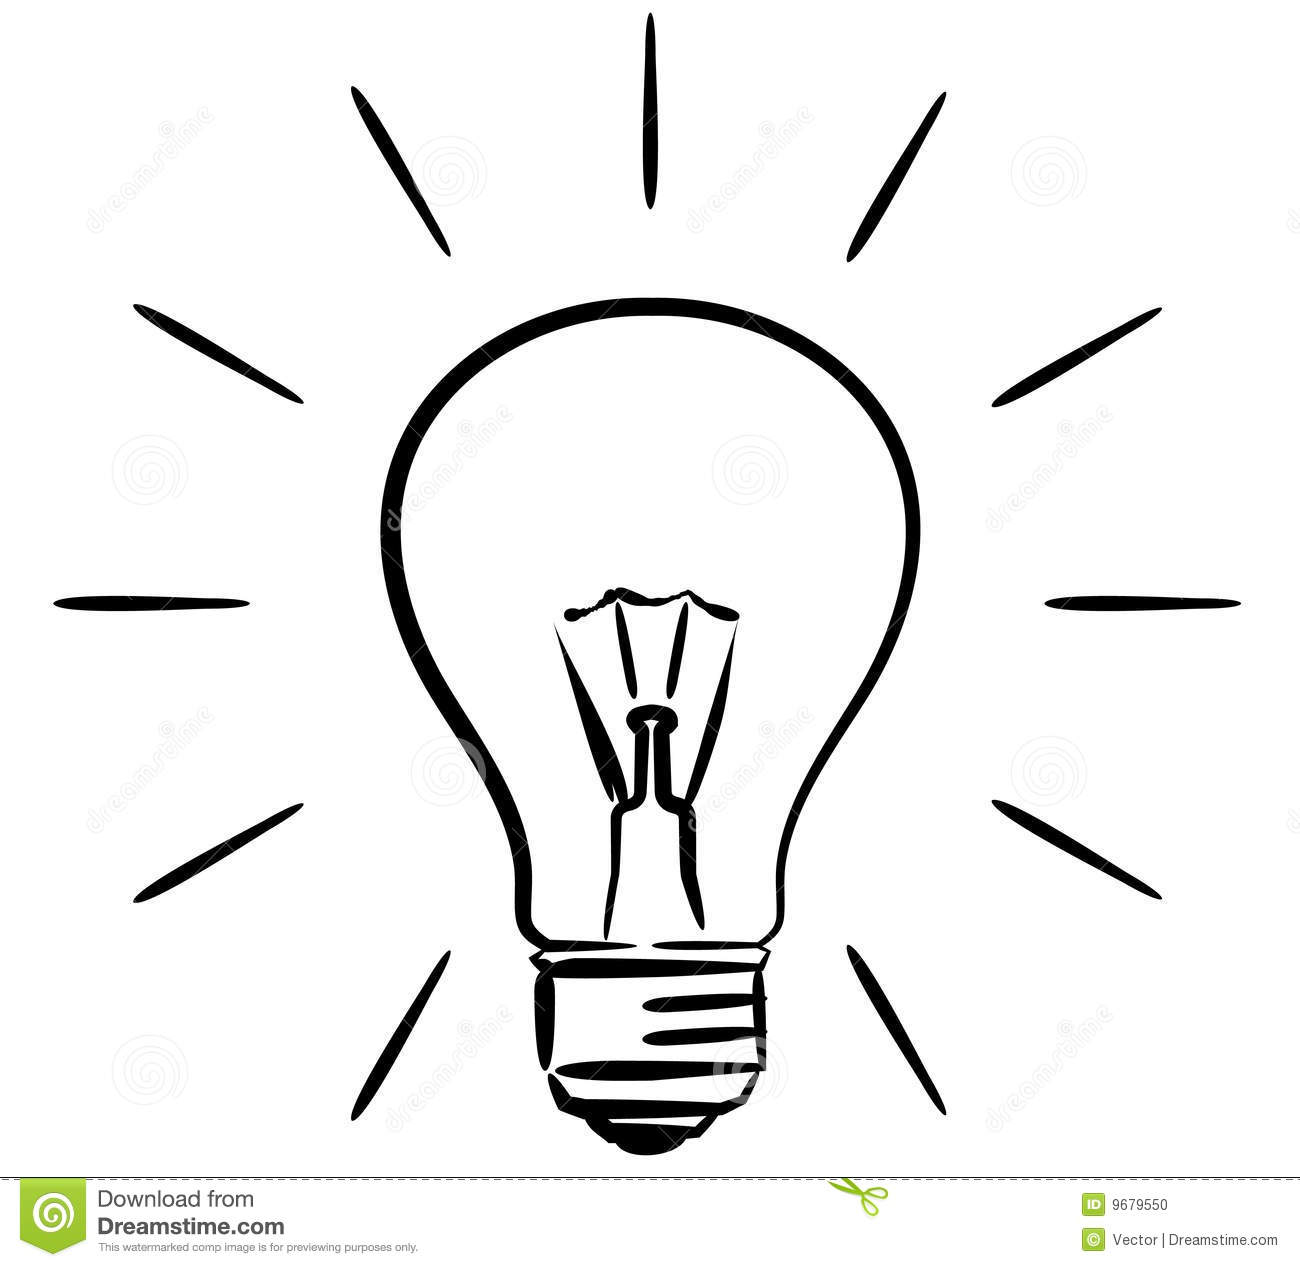 Stock Photo Light Bulb Vector Illustration Image9679550 on simple car illustrations